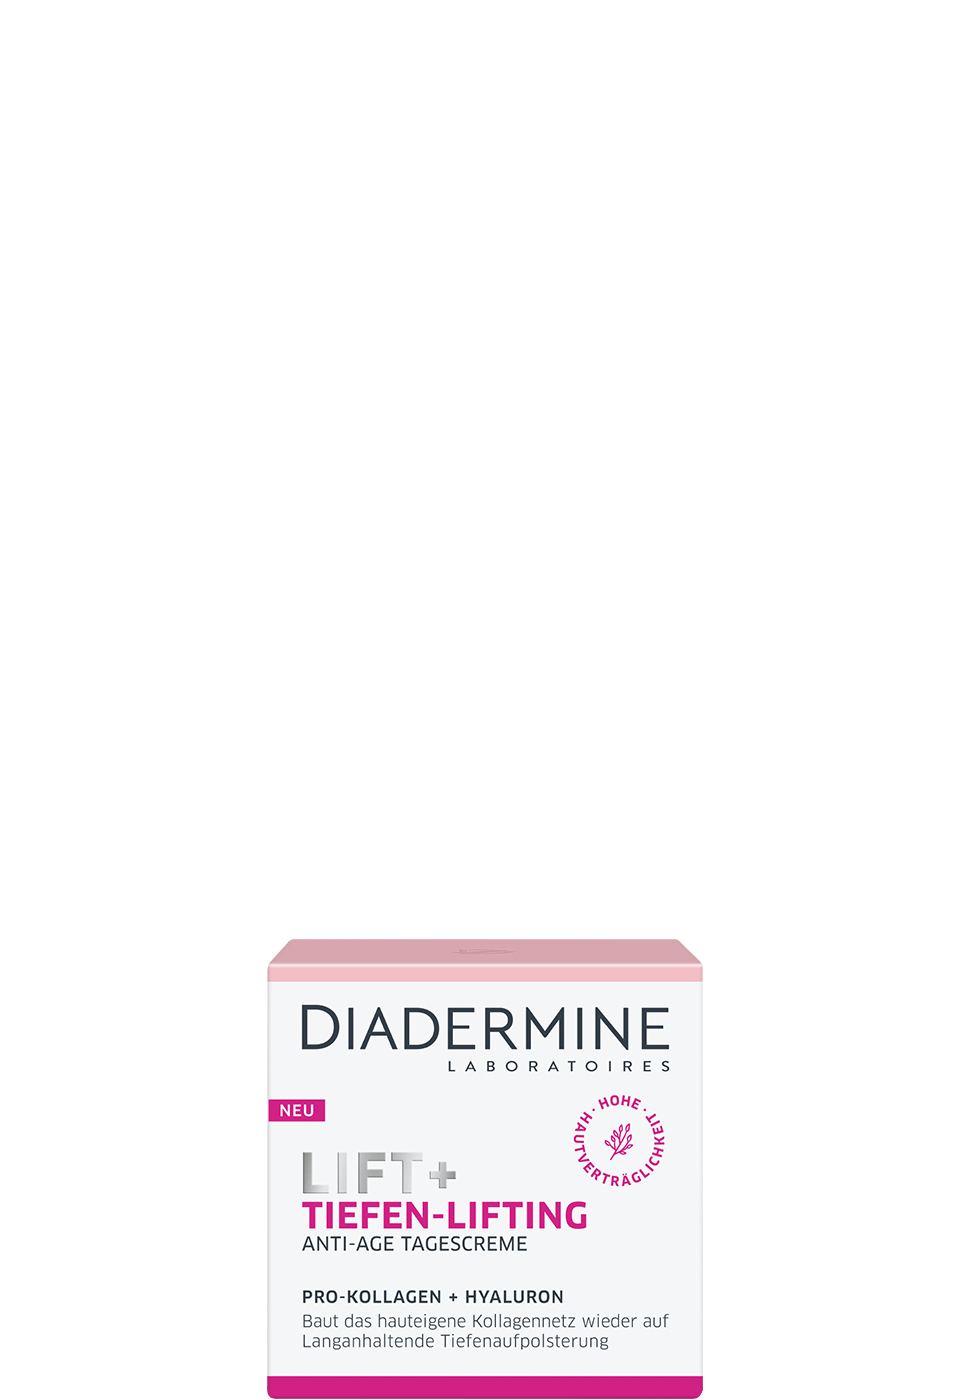 diaatrmine_at_lift_plus_tiefen_lifting_tagescreme_970x1400